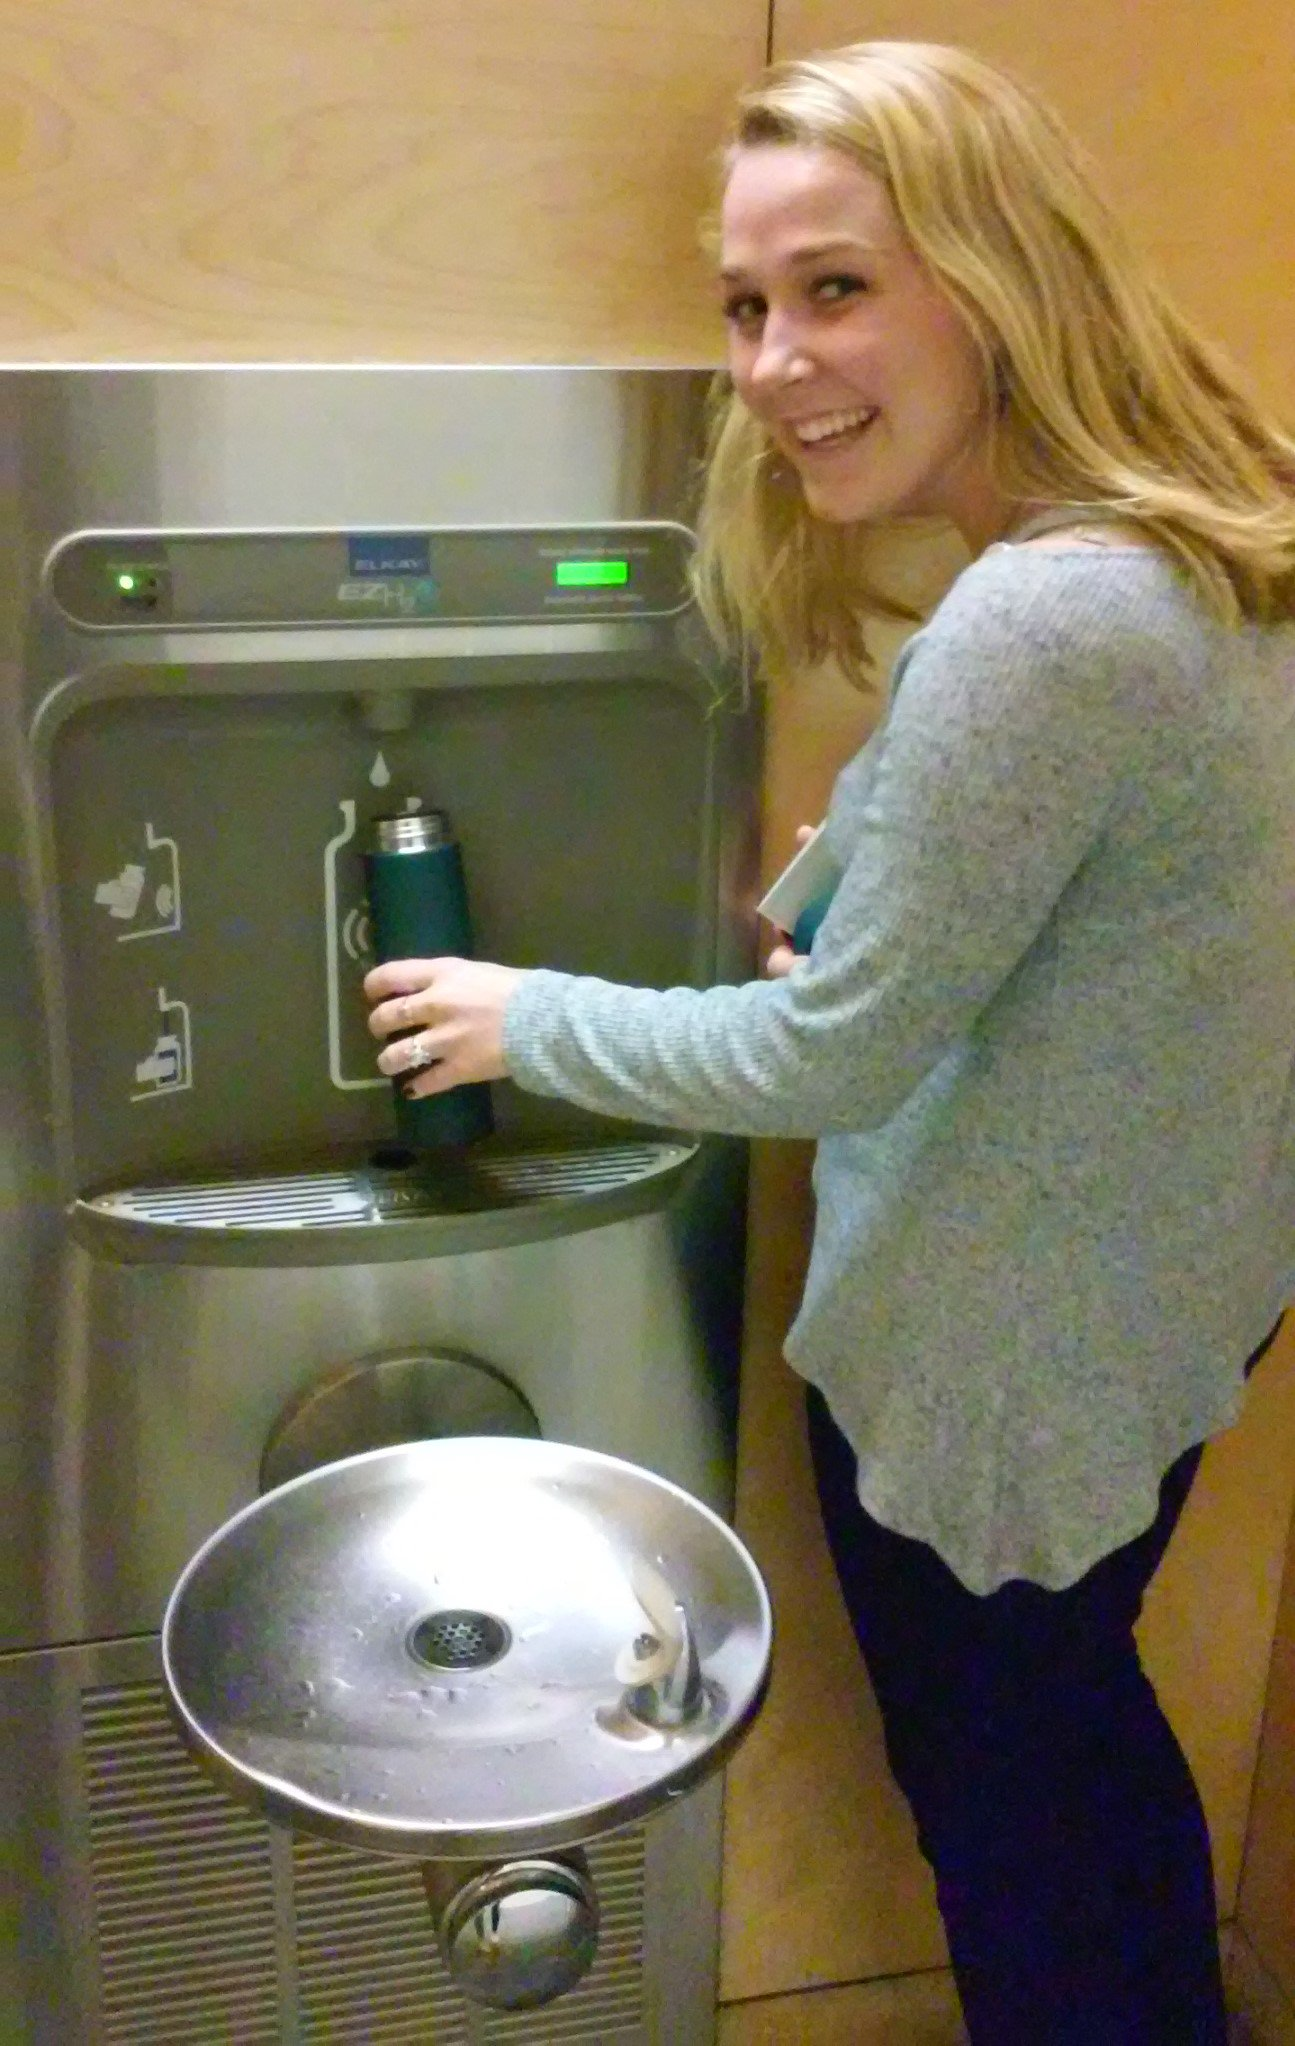 We reduce waste with reusable waterbottles! @TulaneNews how are you reducing waste? Post a pic & tag a friend! #tulanerecycles #recyclemania https://t.co/kCMbr87qAU